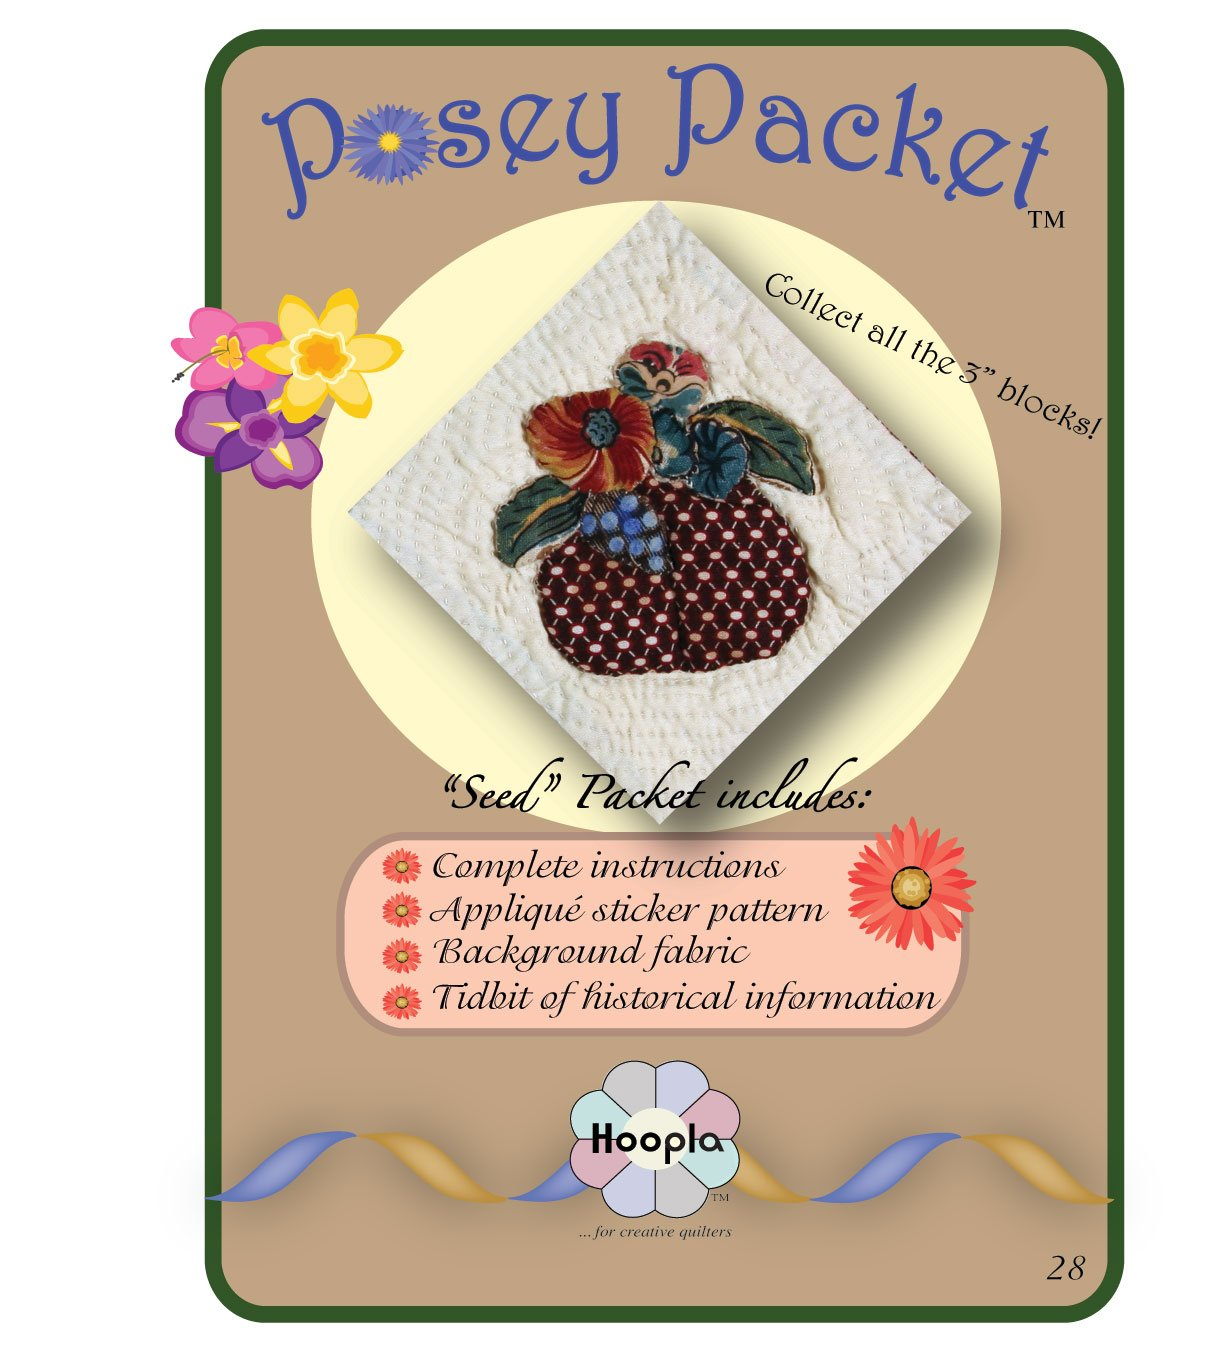 Posey Packet 28